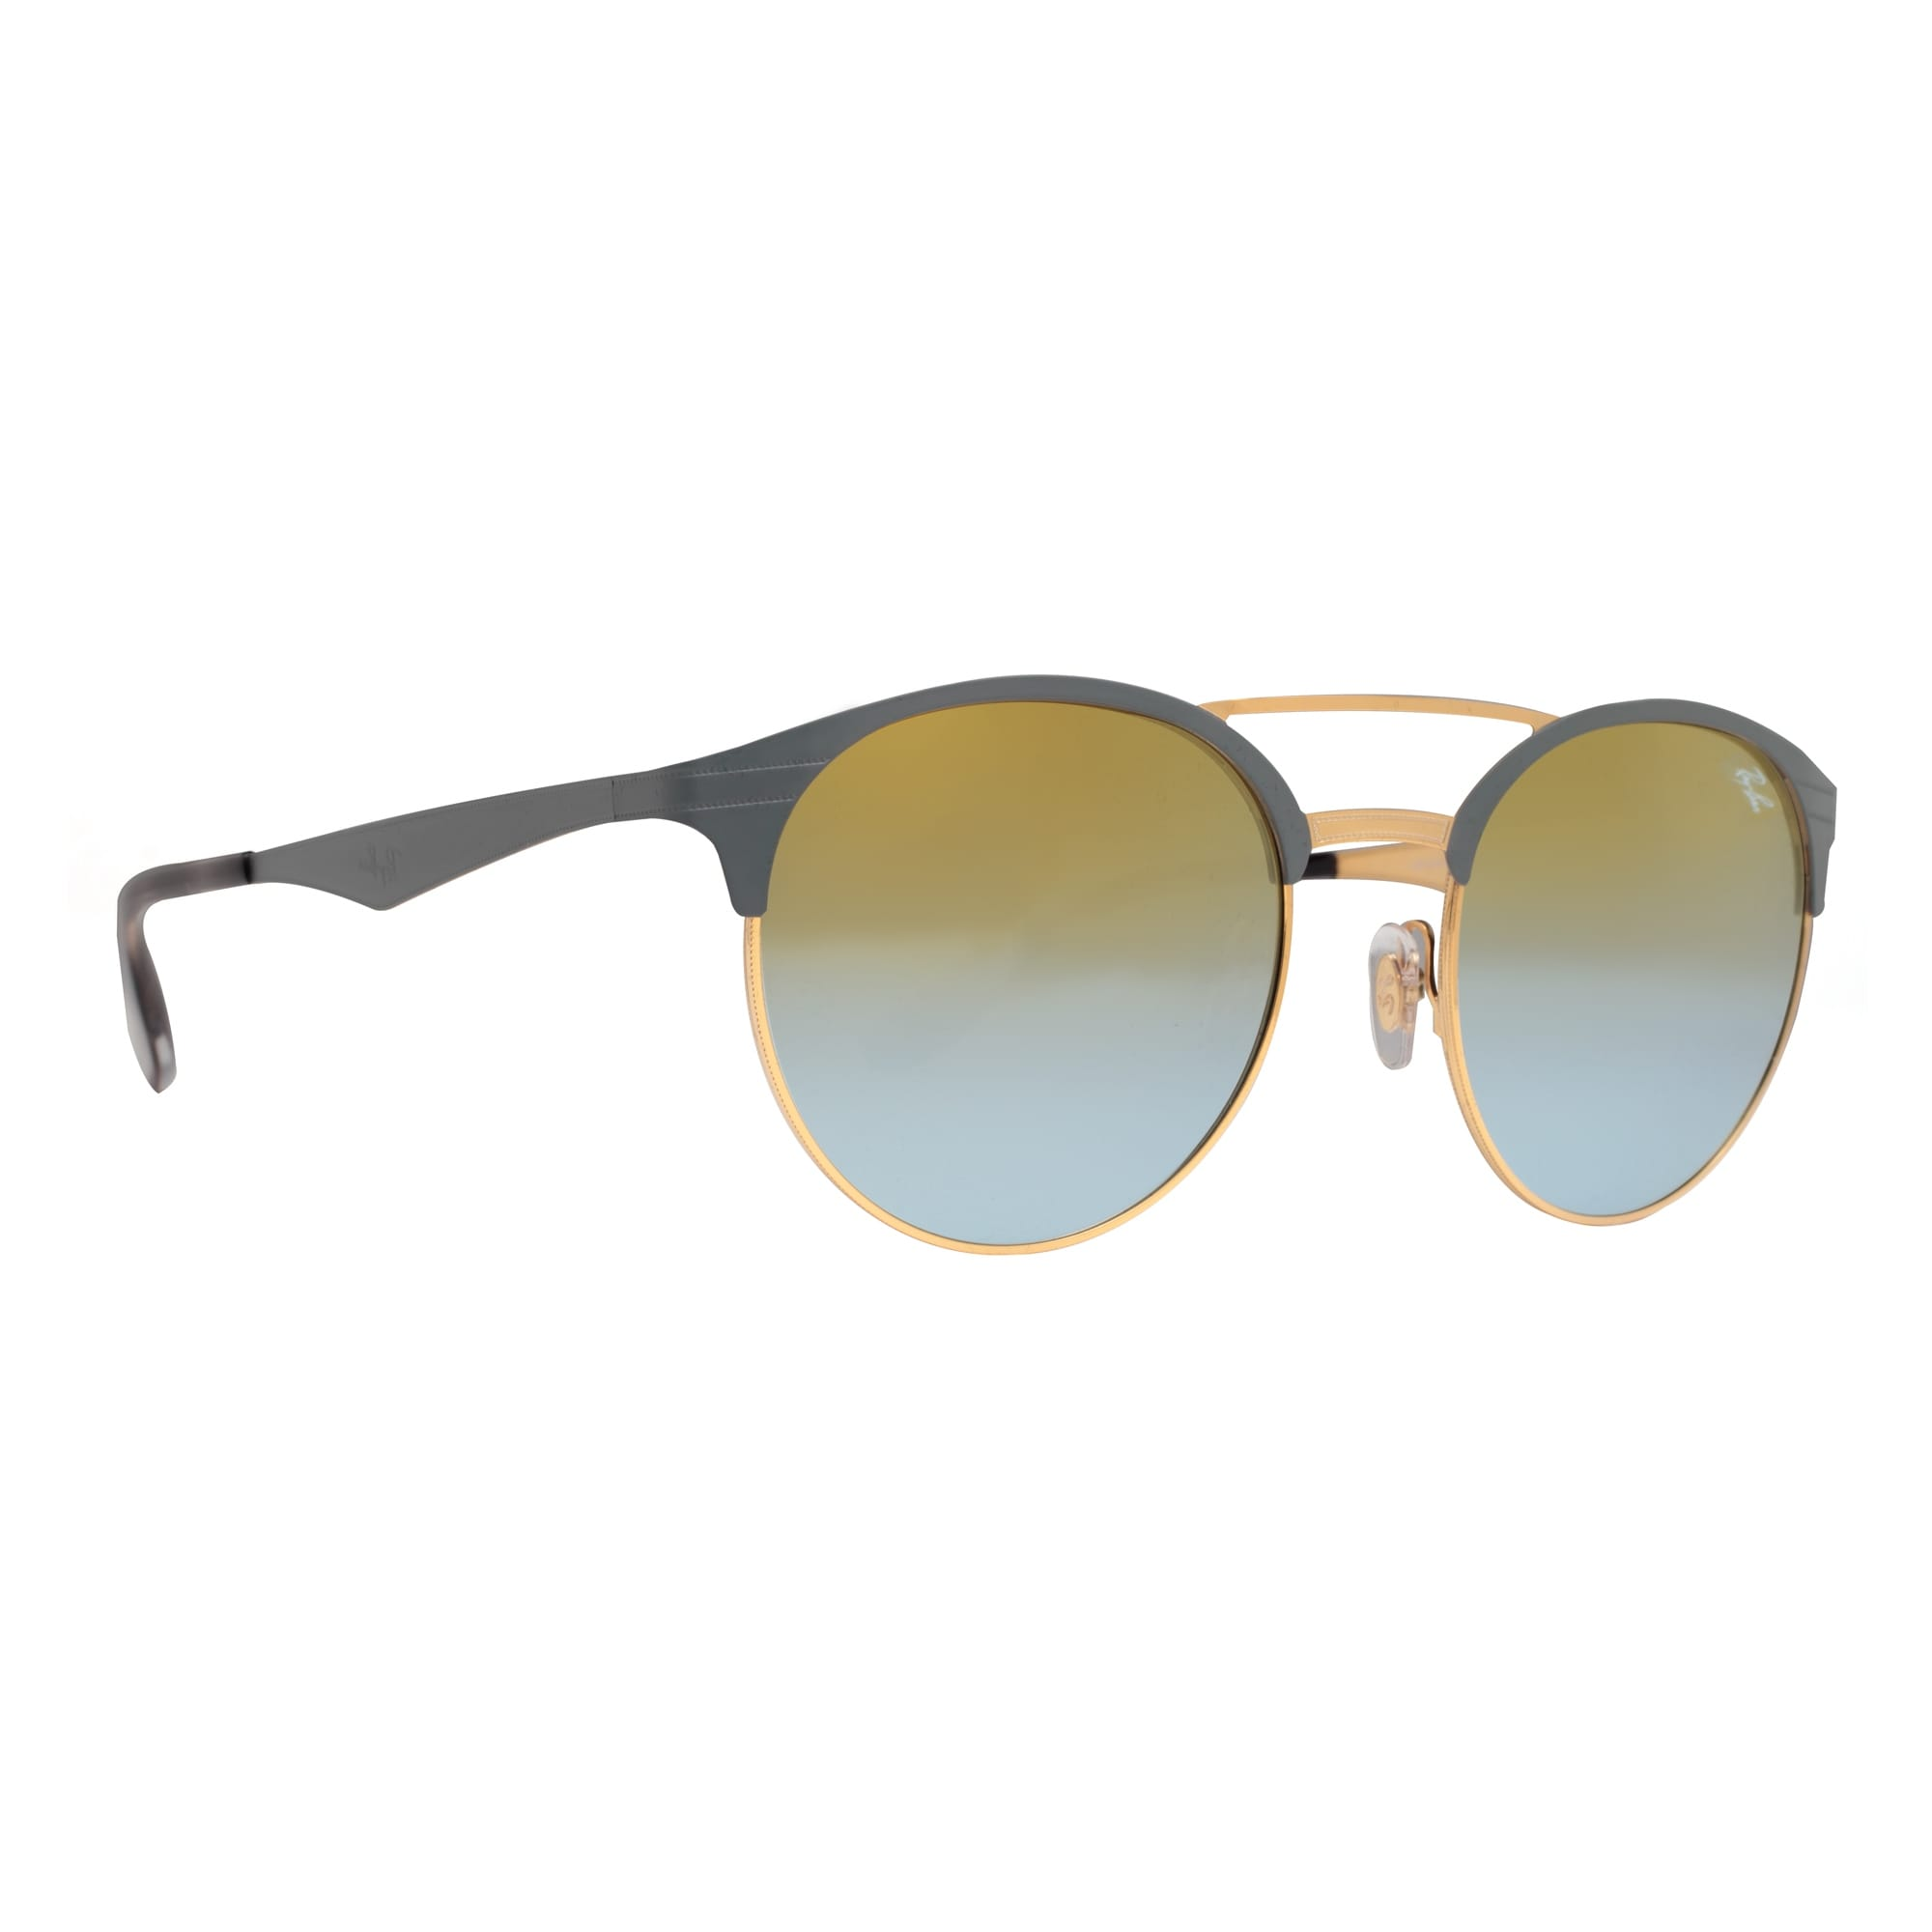 Ray-Ban RB3545 9007A7 54 mm/20 mm JGma5